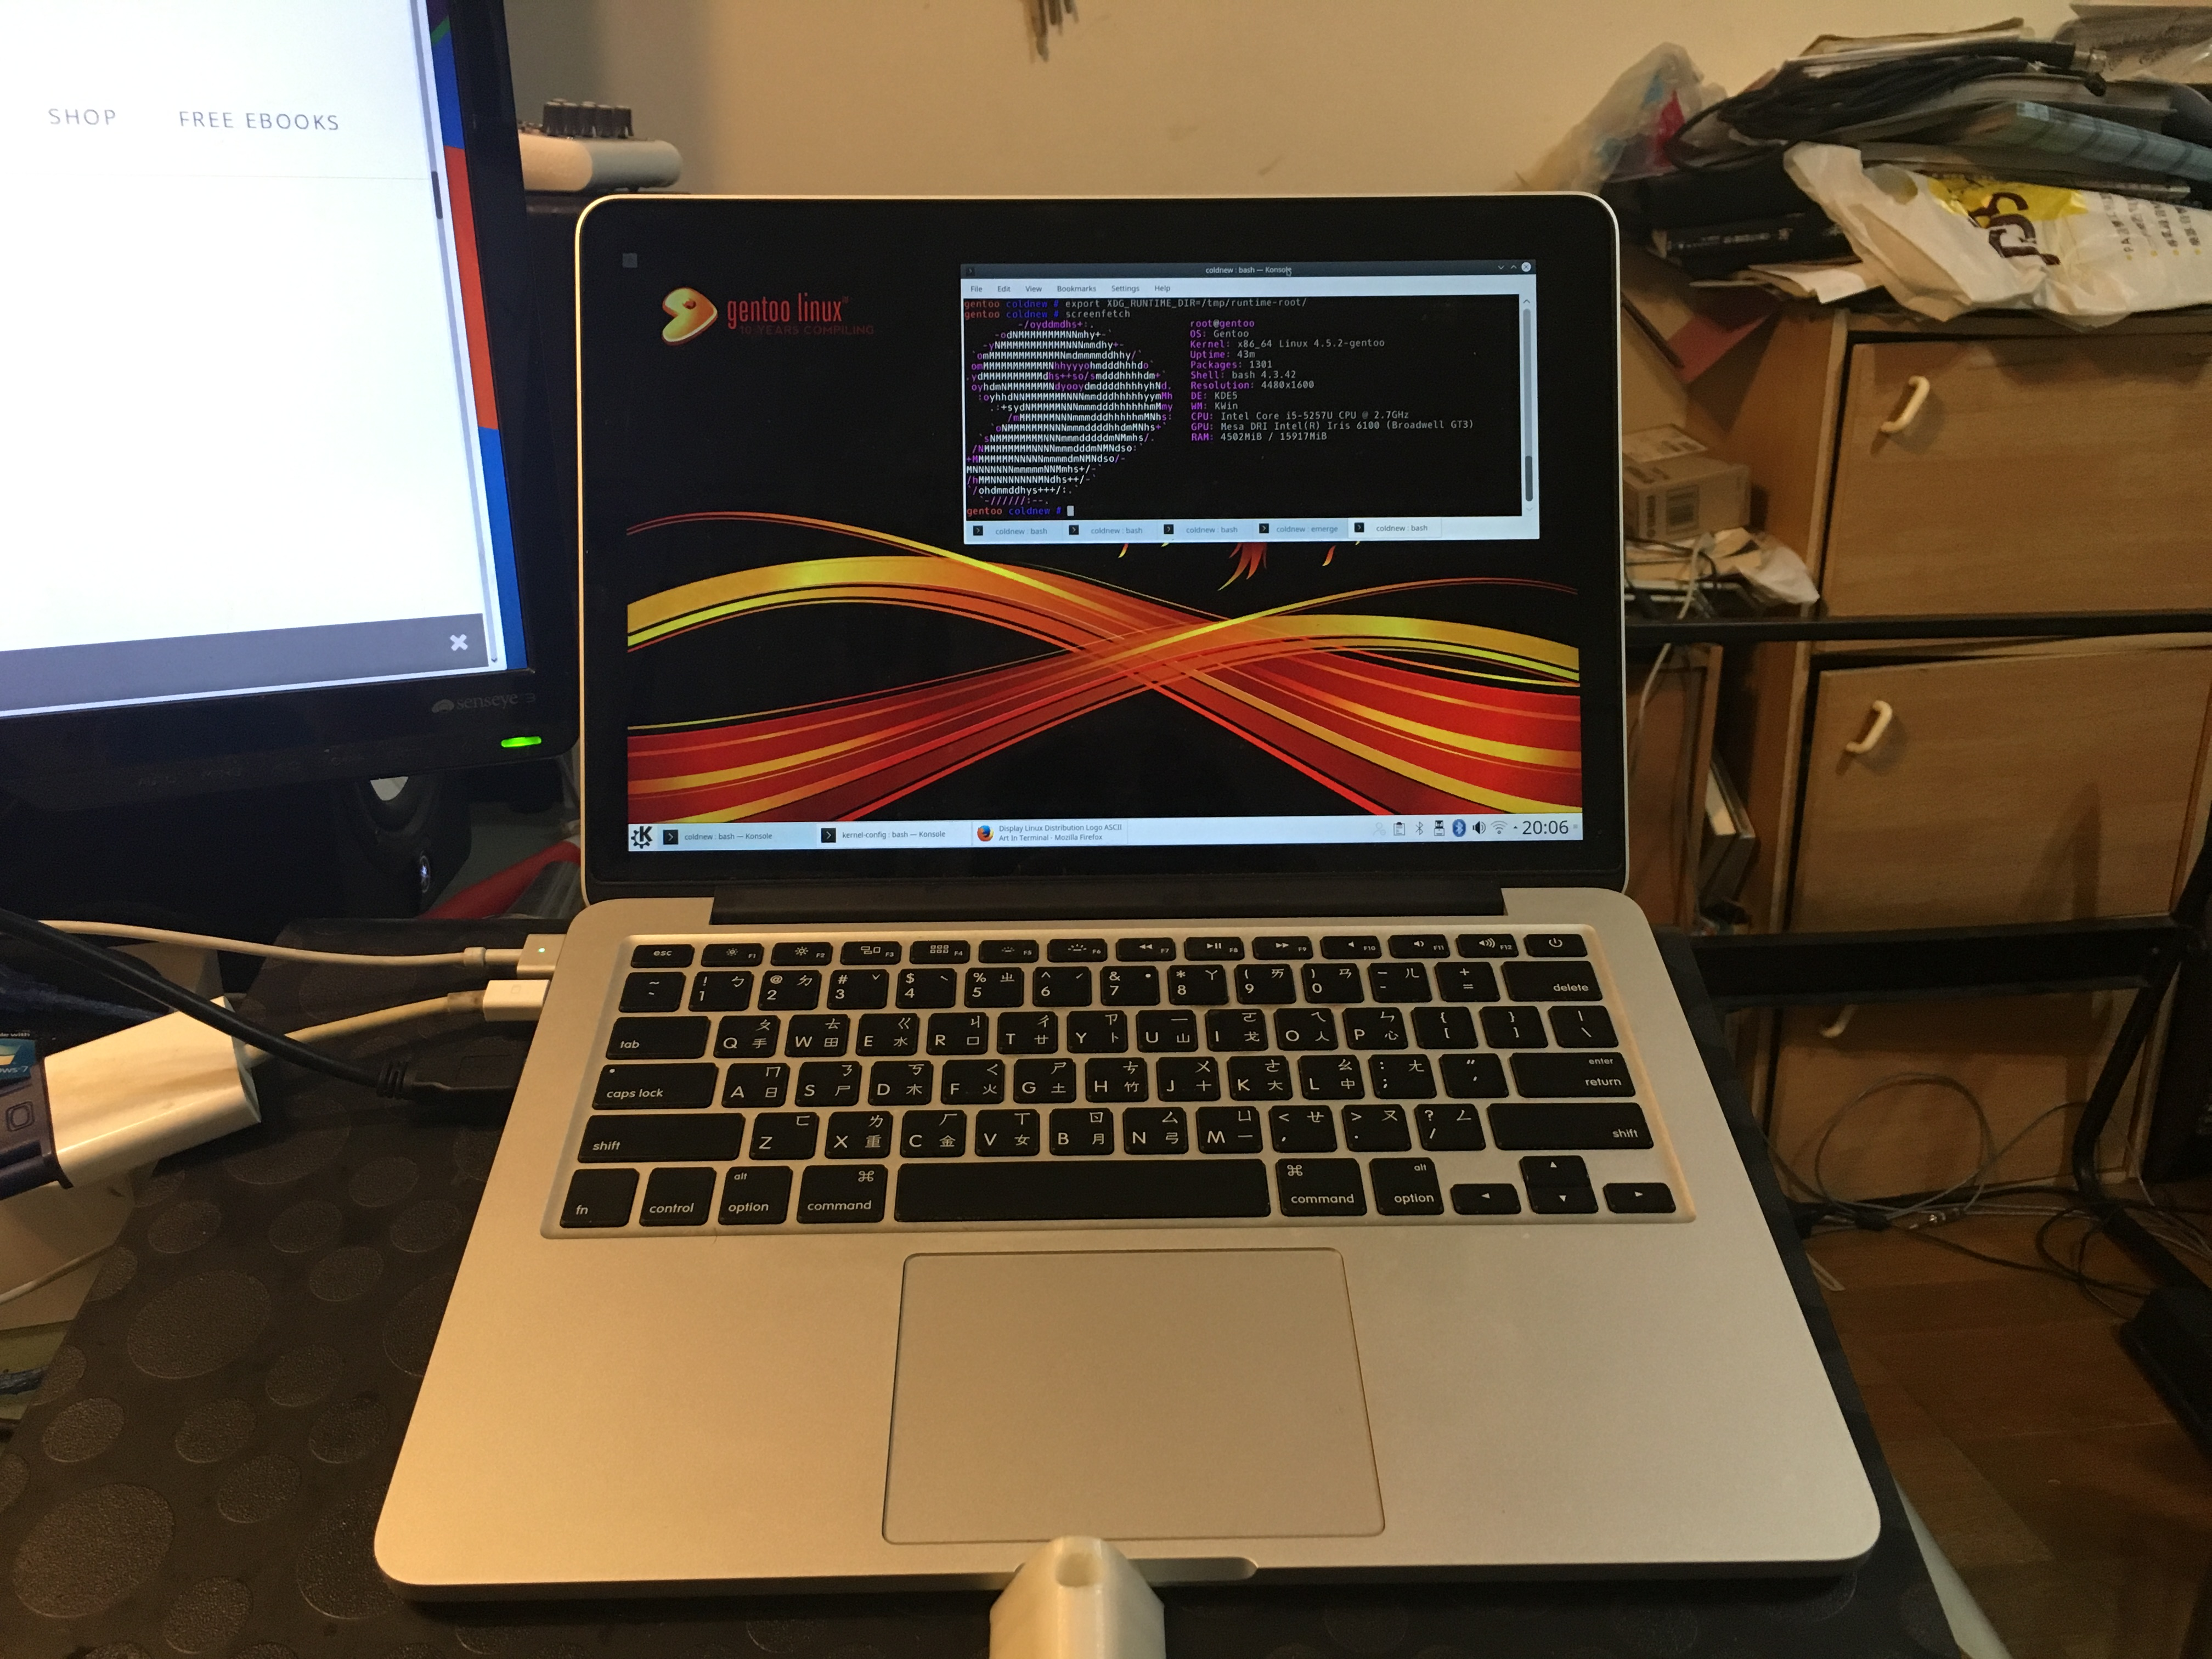 Github coldnewmacbookpro 2015 config my personal gentoo config which device can work ccuart Choice Image